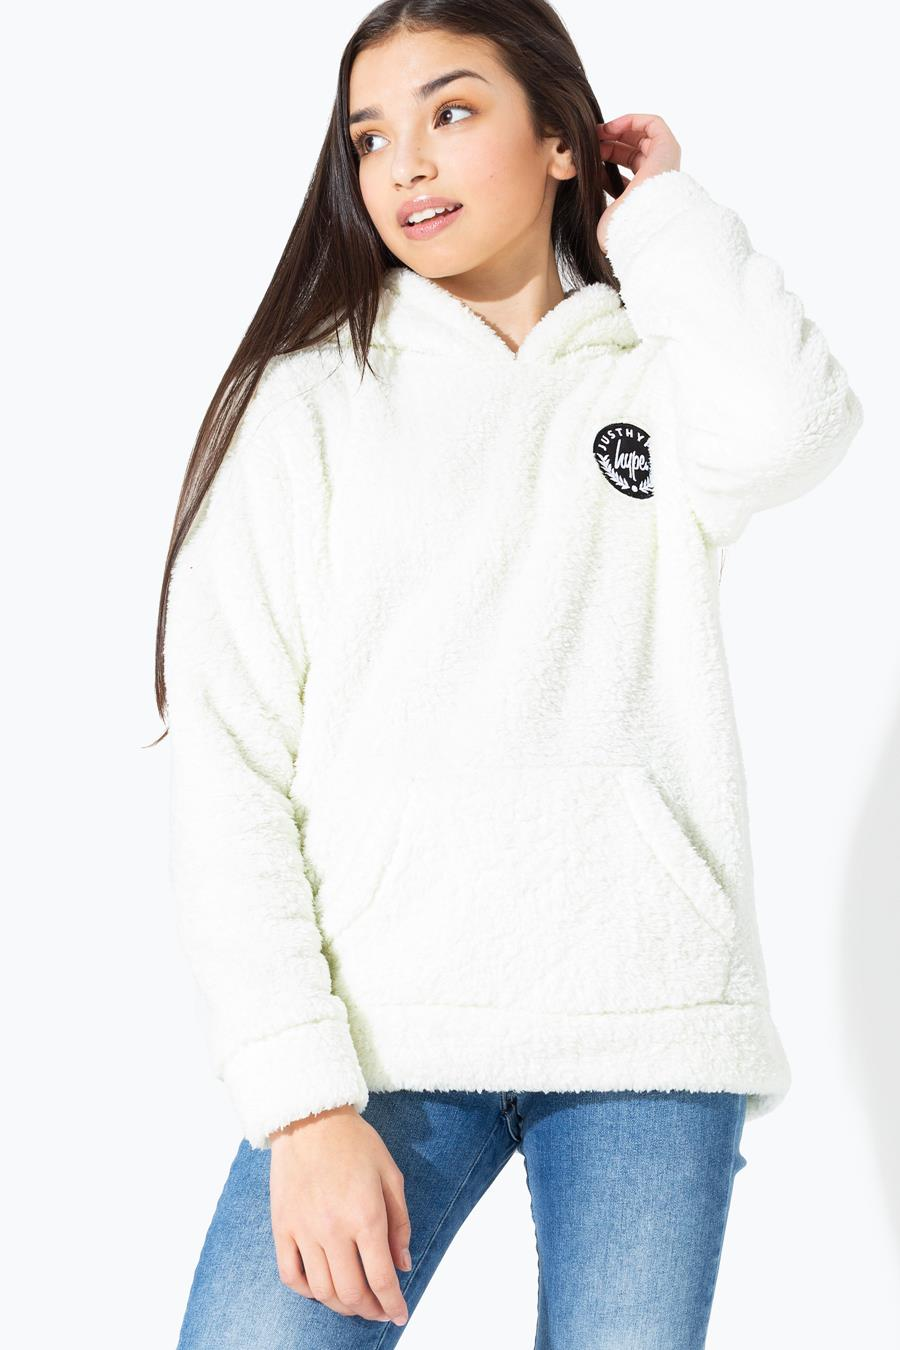 Hype Cream Sherpa Kids Pullover Hoodie | Size 16Y